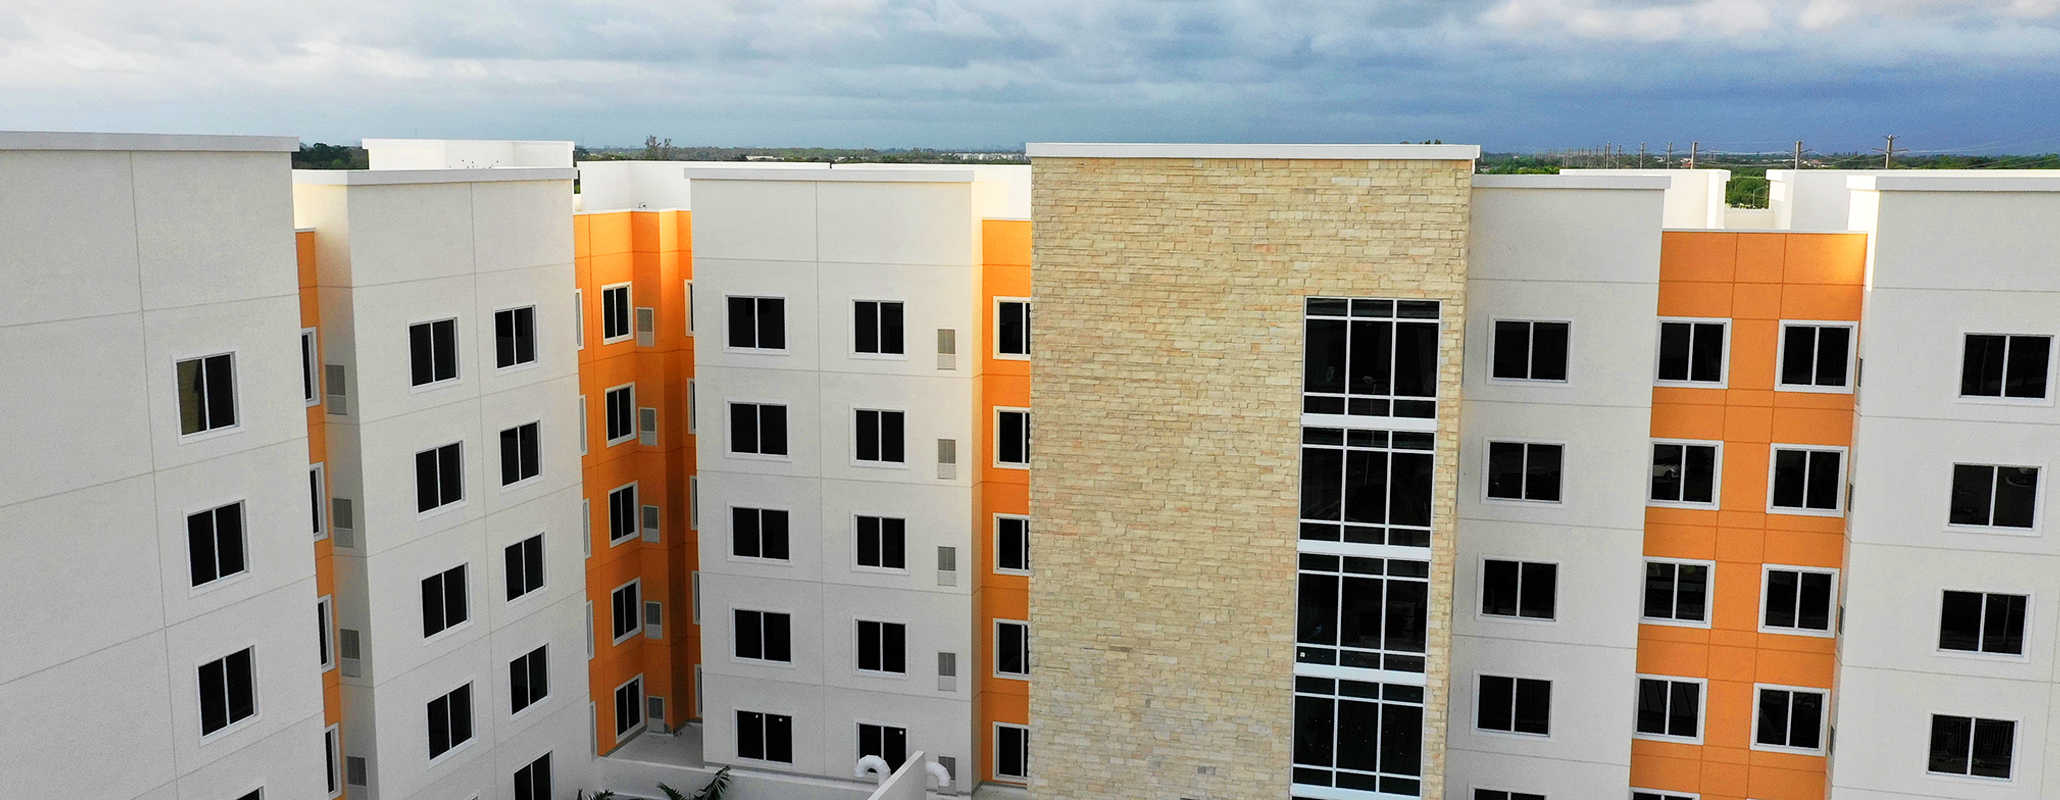 Multi-level orange building with grey outsets and stone accents, FS-300 Impact front set double panel windows with aluminum framing by Aldora, grid curtain wall windows in stone accent section of building